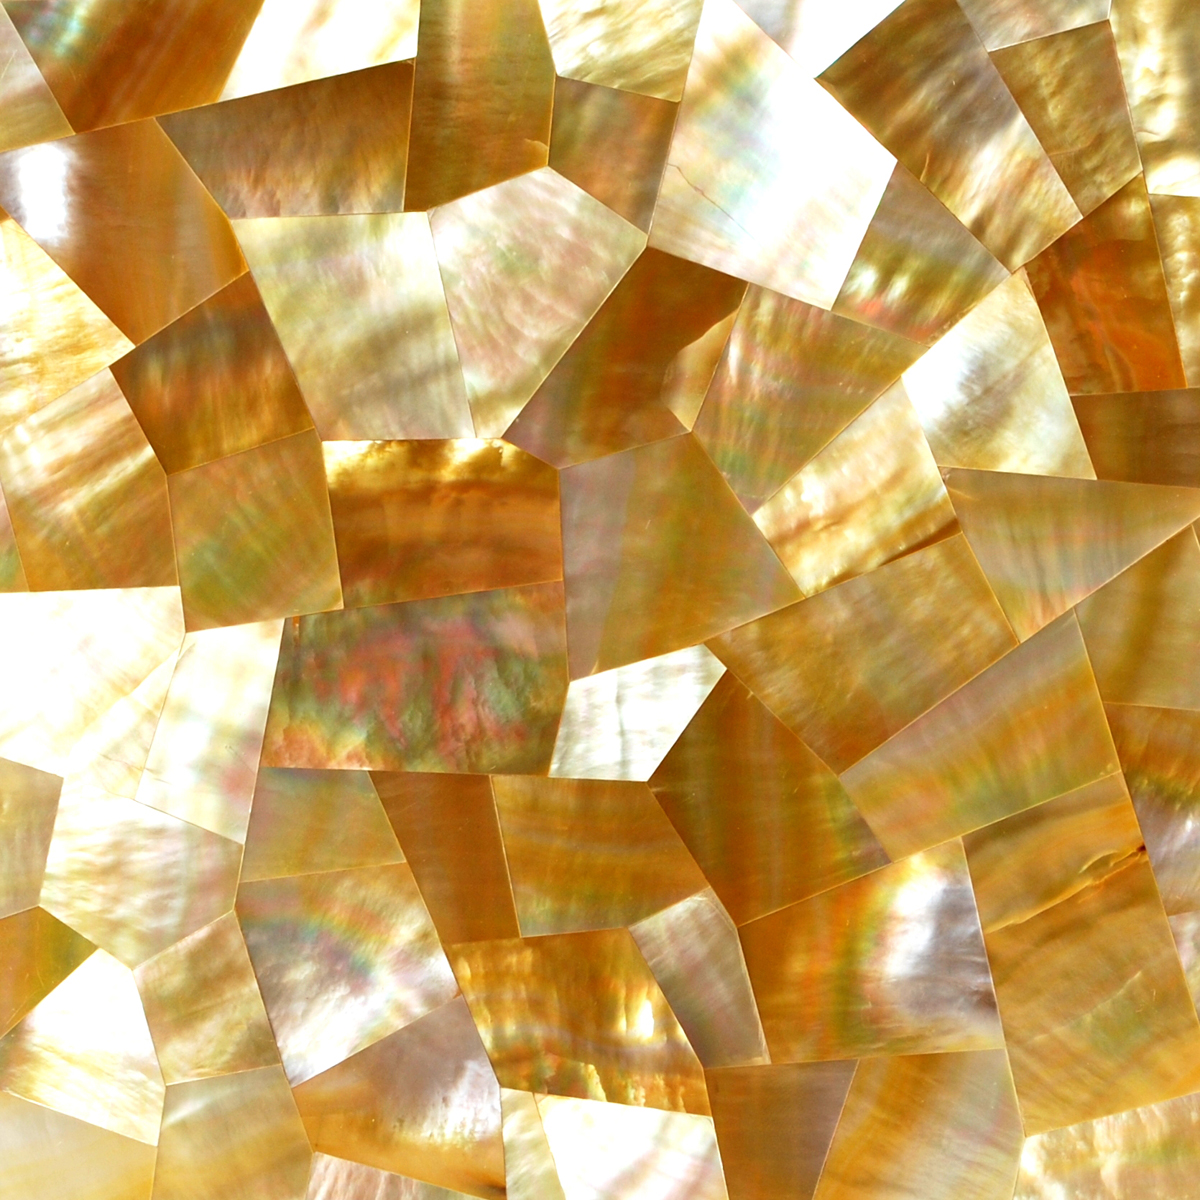 Gold Mother of Pearl Random Seashell, 1 square foot